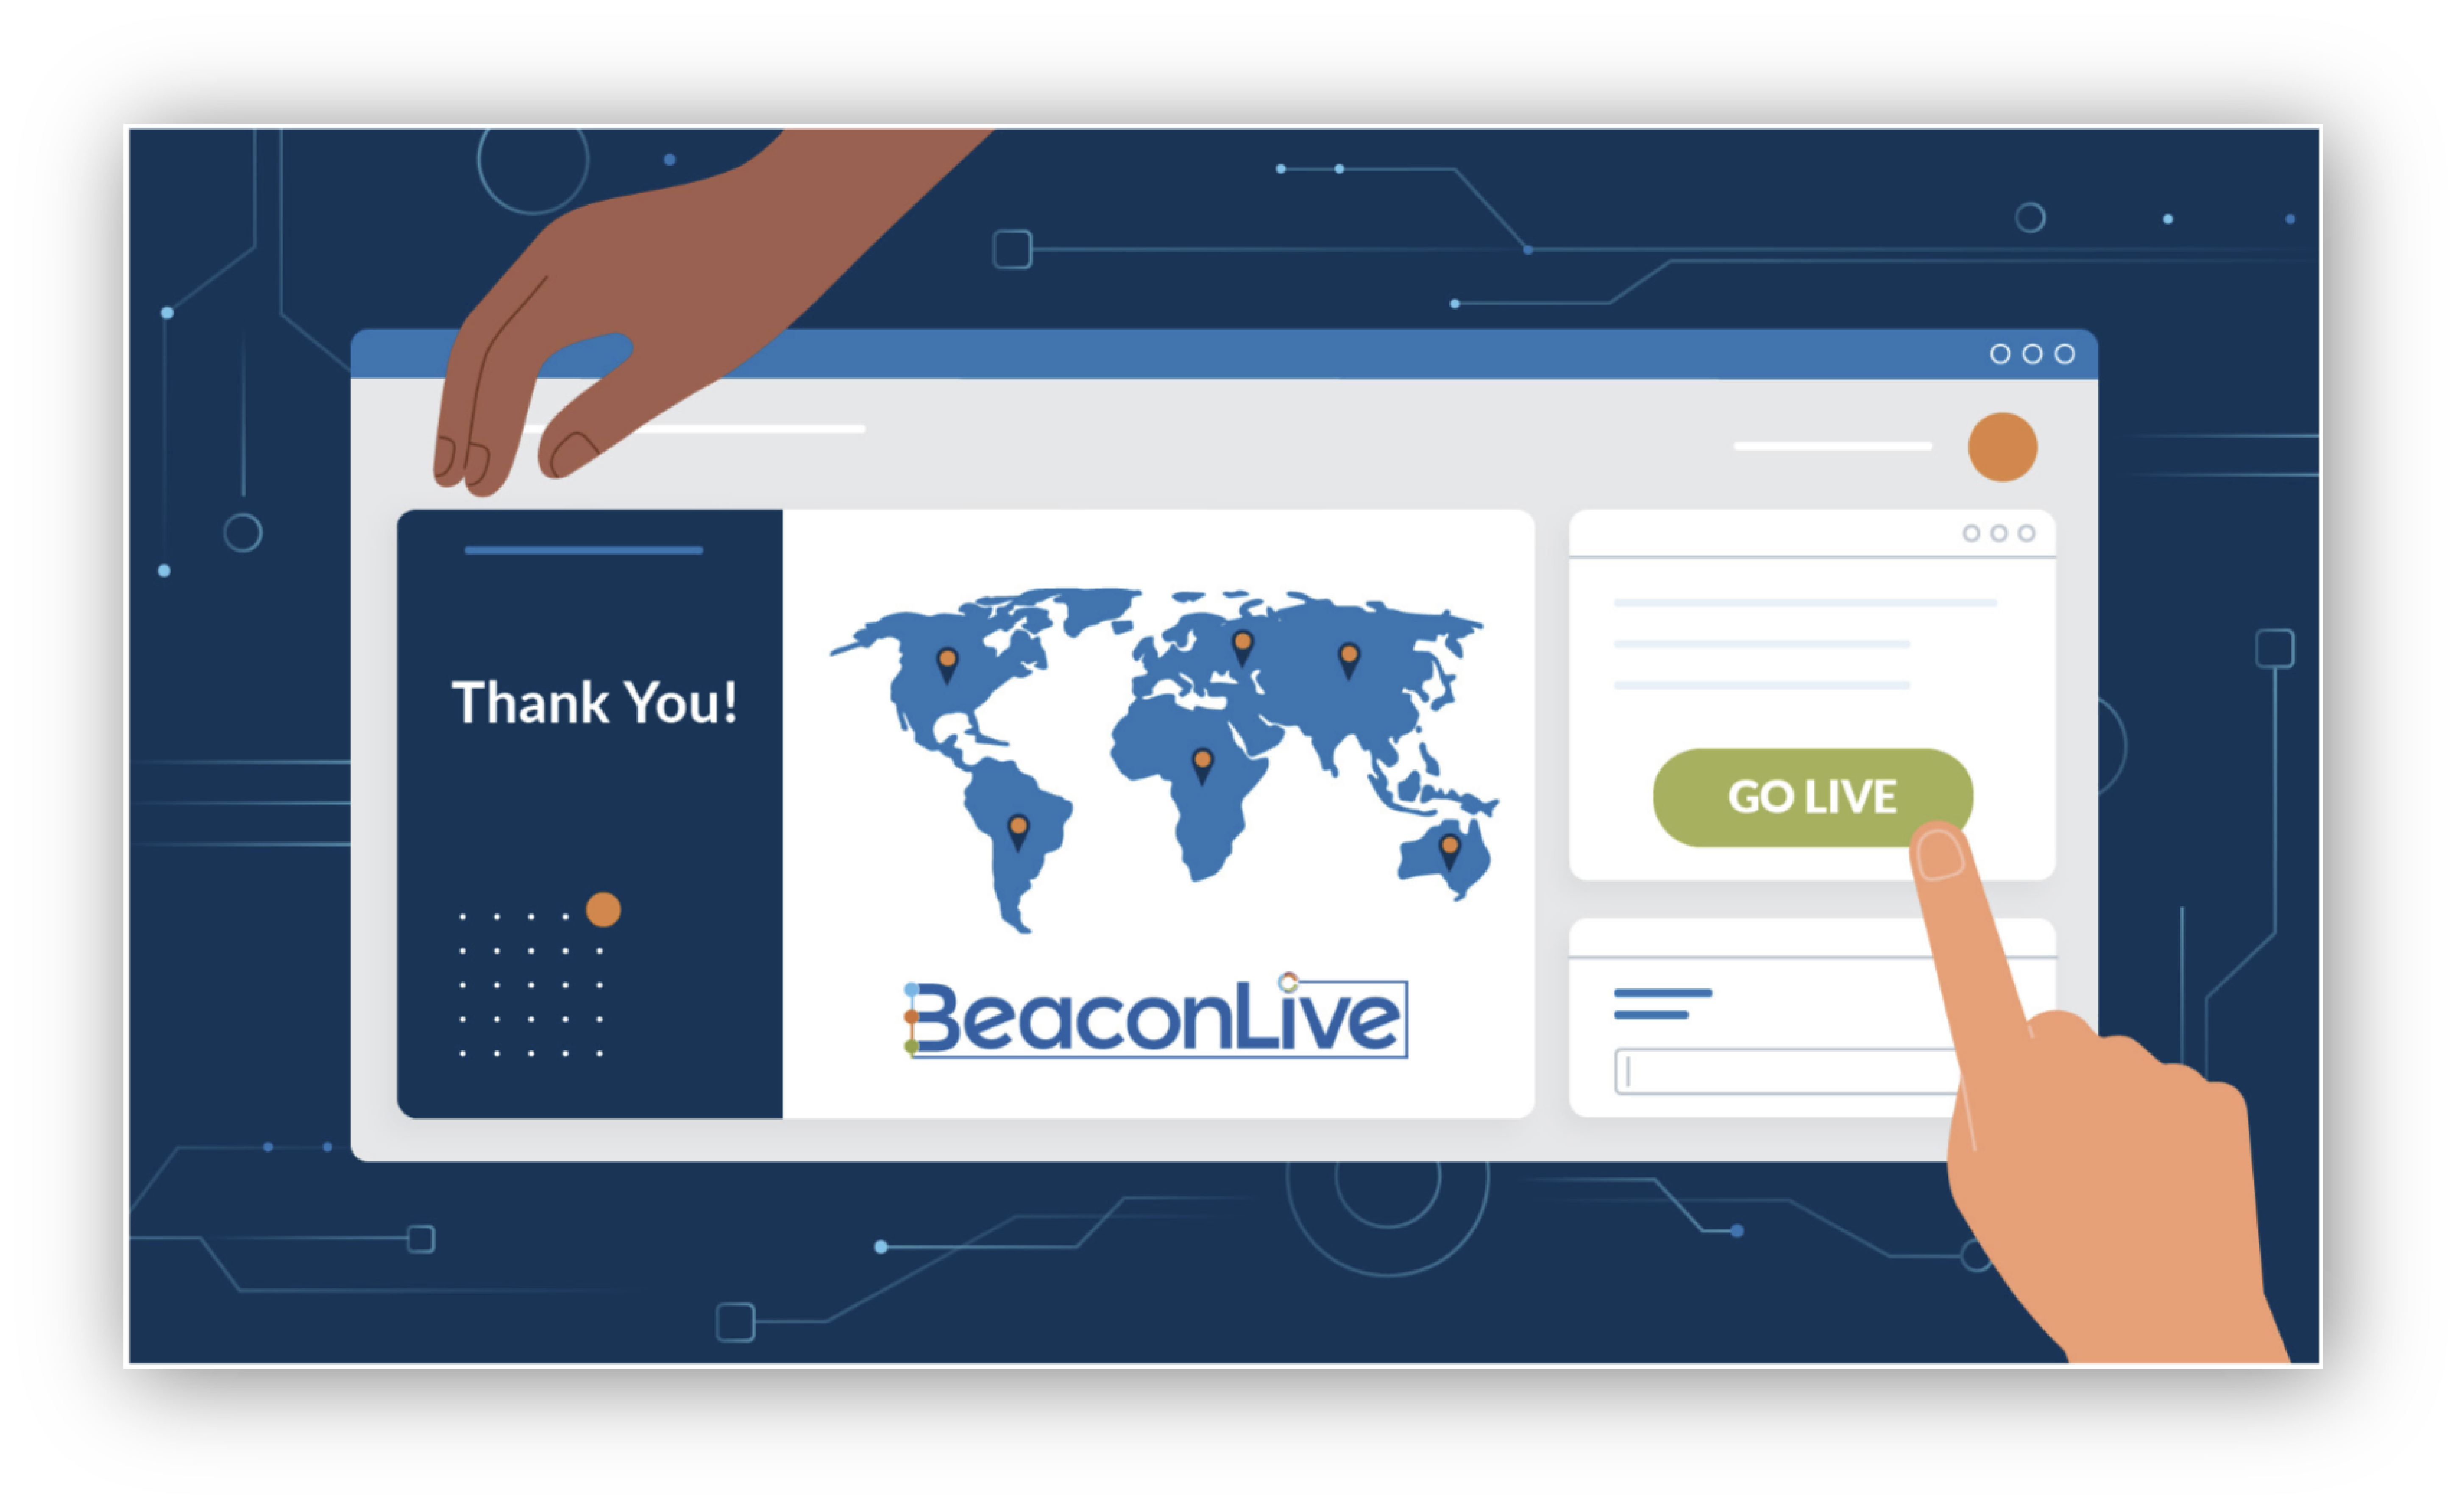 Go Live with BeaconLive animation